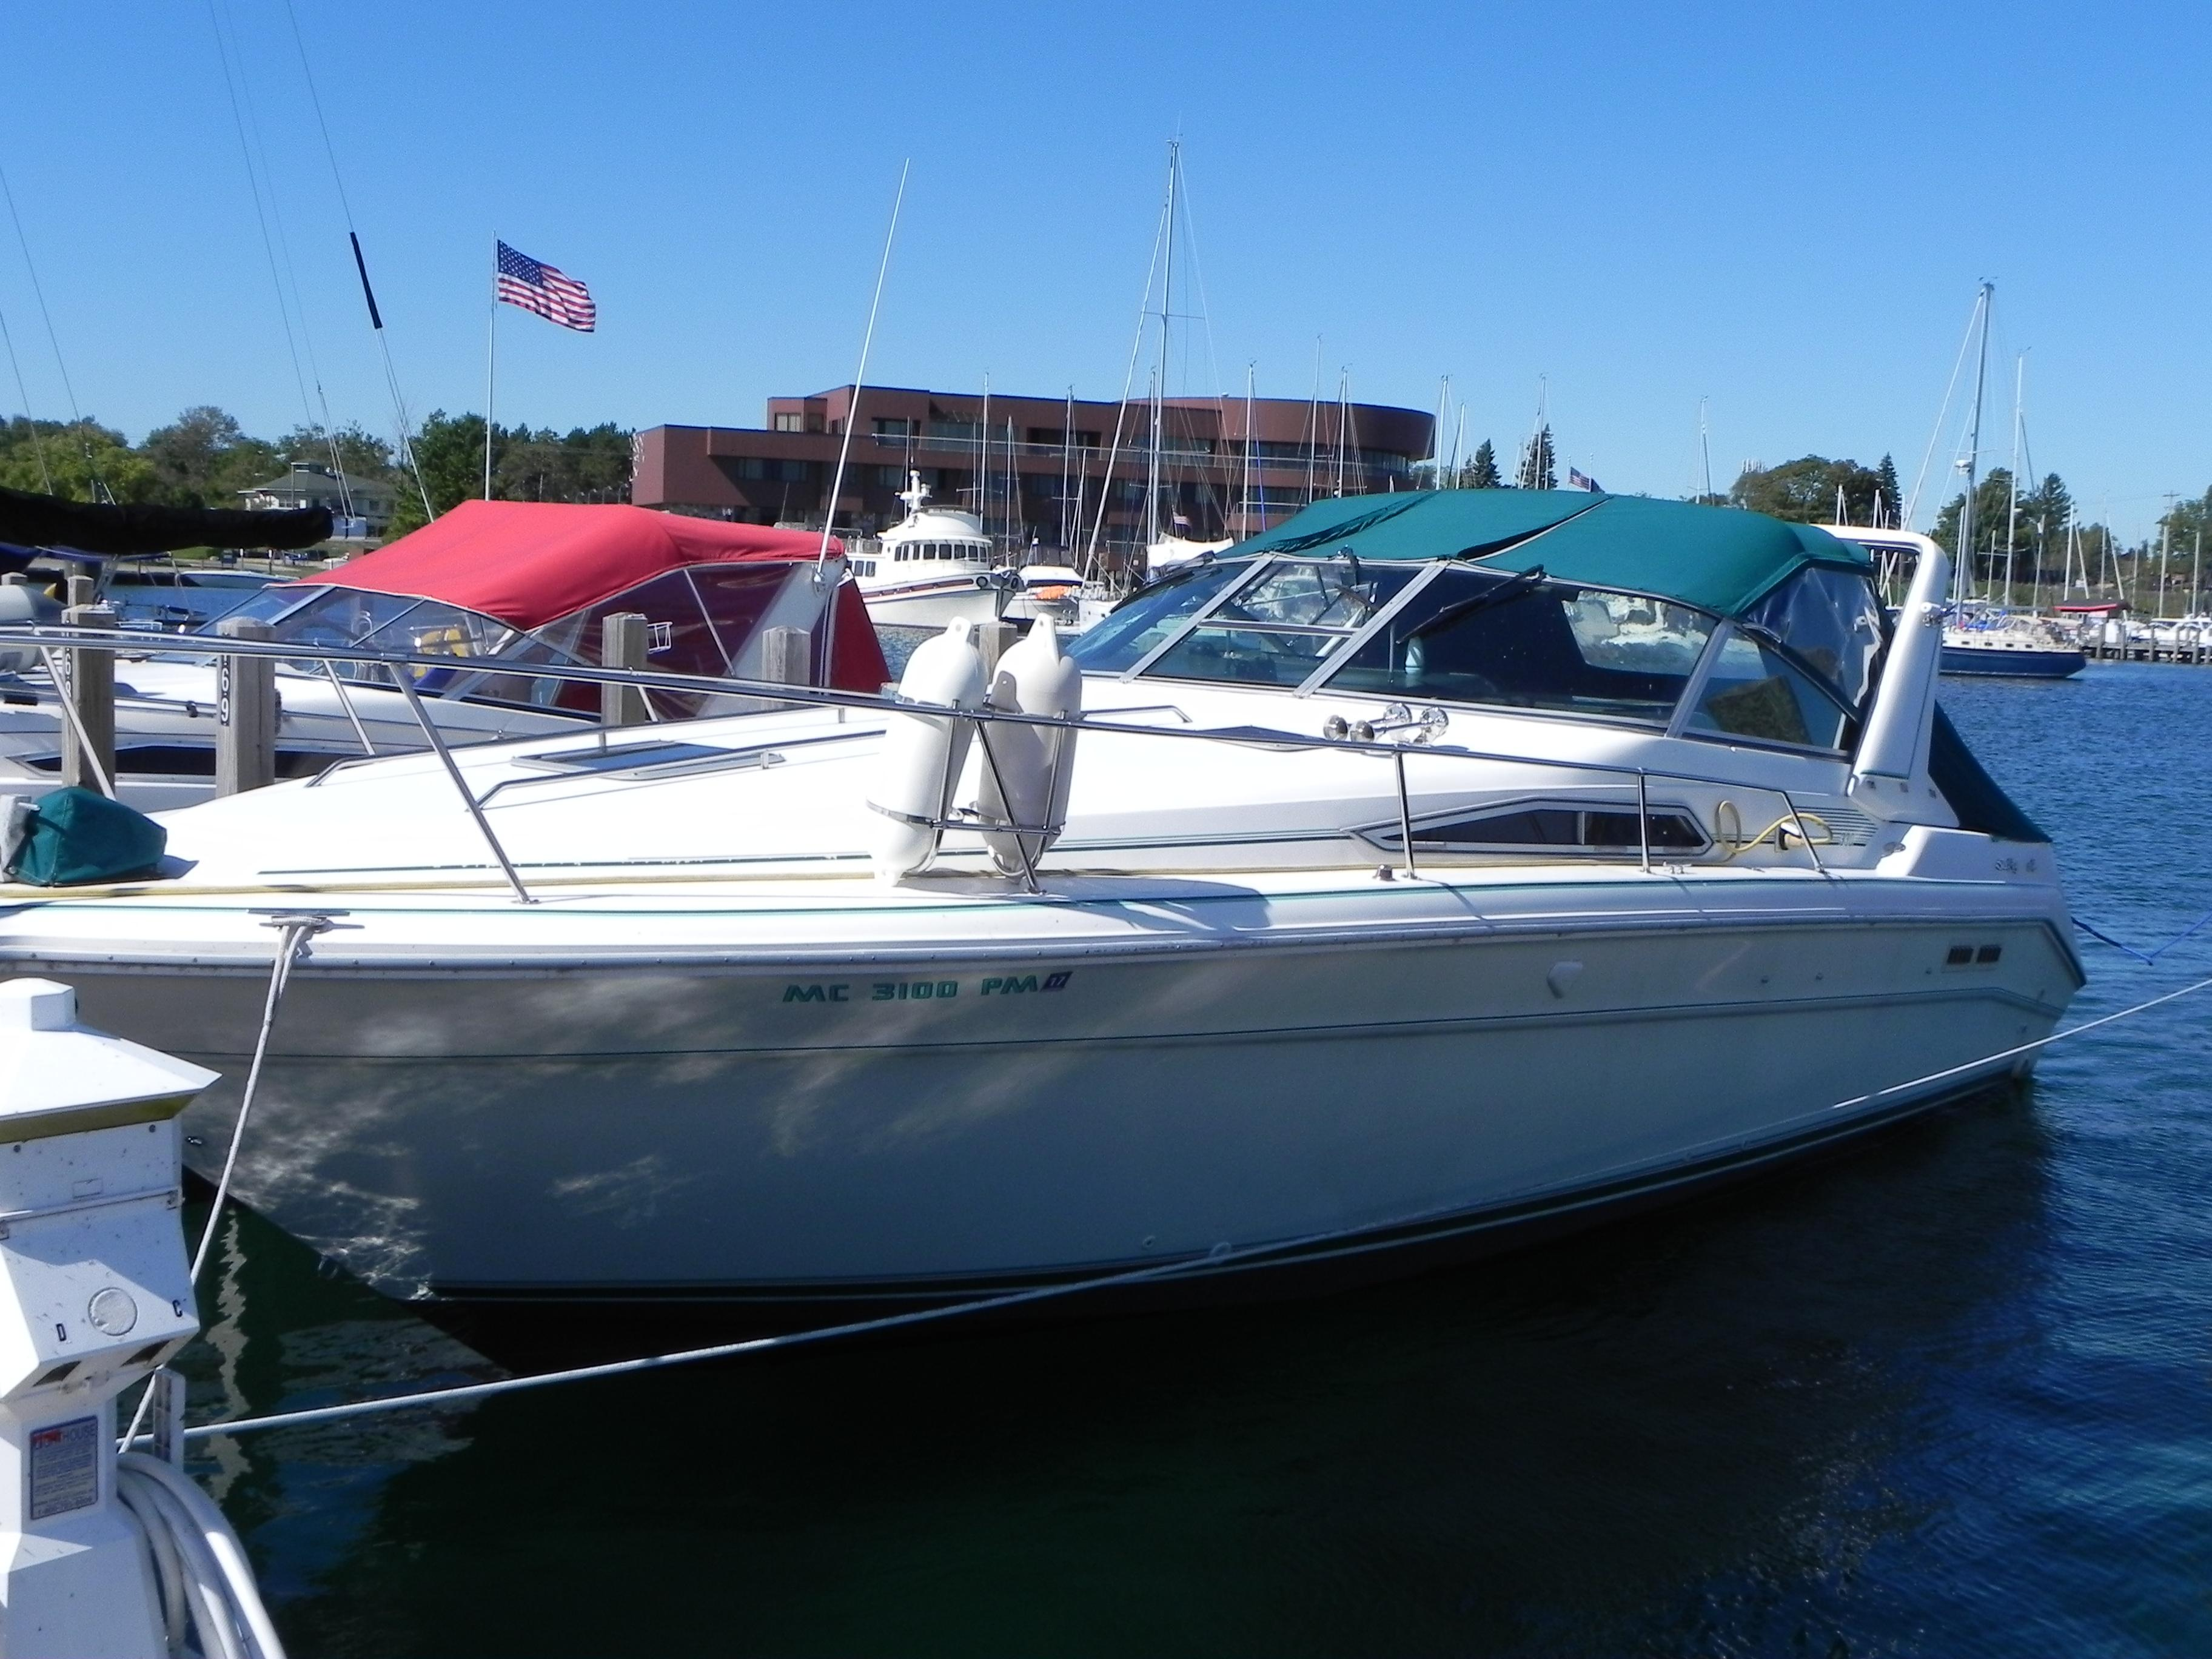 5423713_20151020112140241_1_XLARGE&w=3648&h=2736&t=1445371506000 1996 sea ray 290 sundancer power boat for sale www yachtworld com 1997 sea ray sundancer wiring diagram at n-0.co